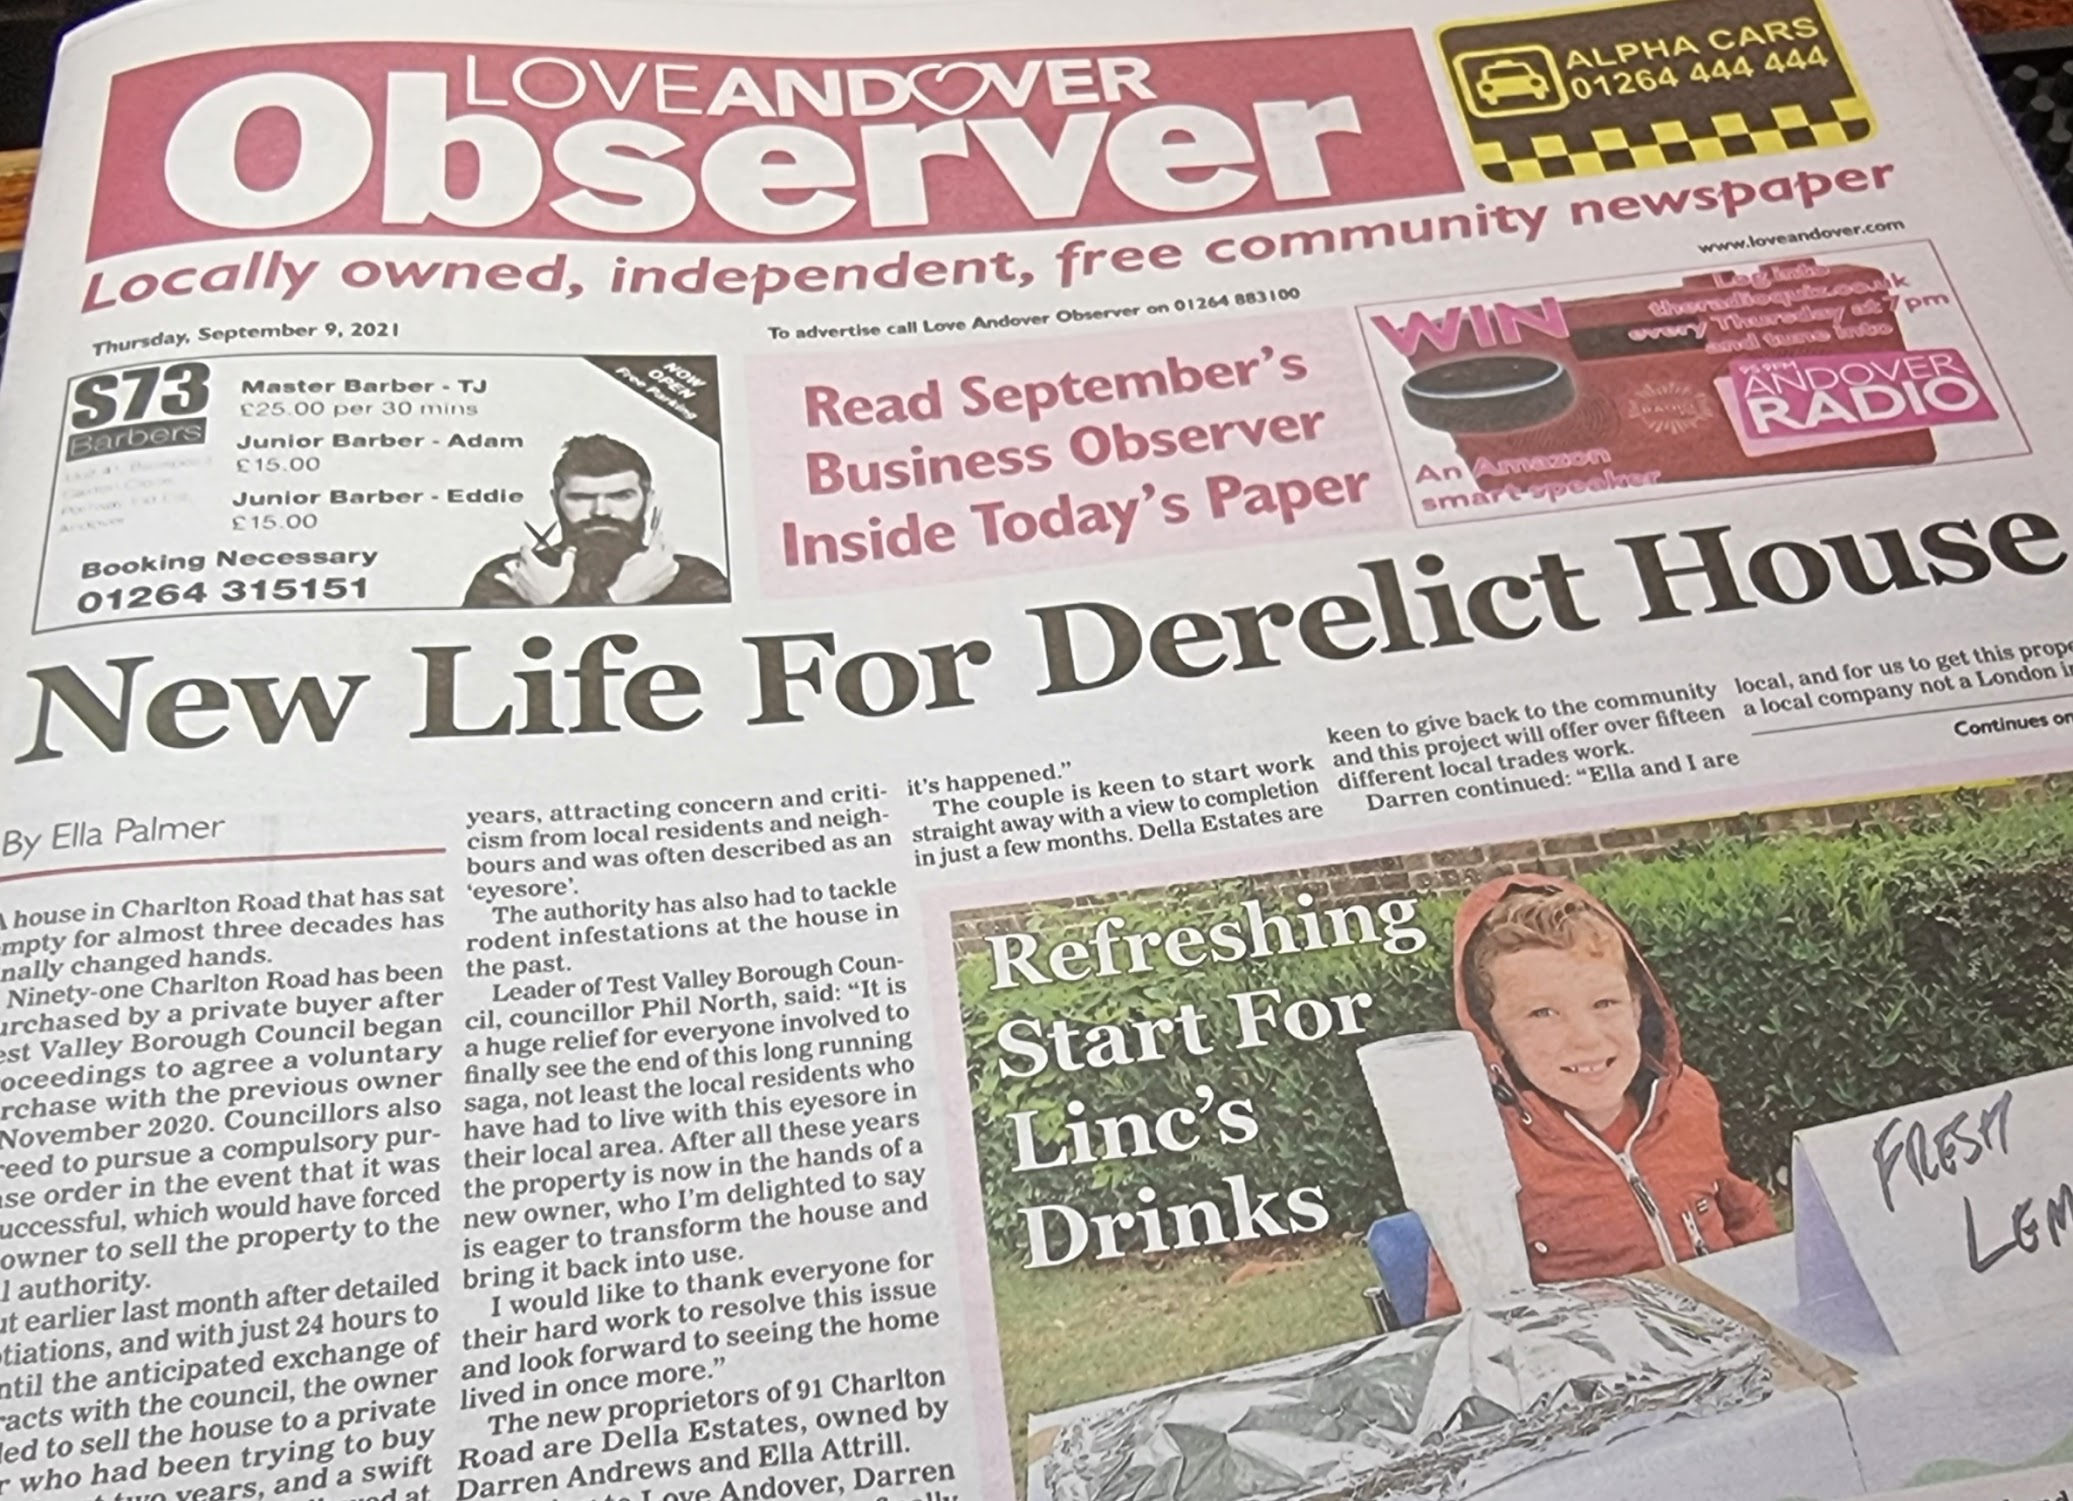 Love Andover Observer Newspaper Front Page 9th September 2021